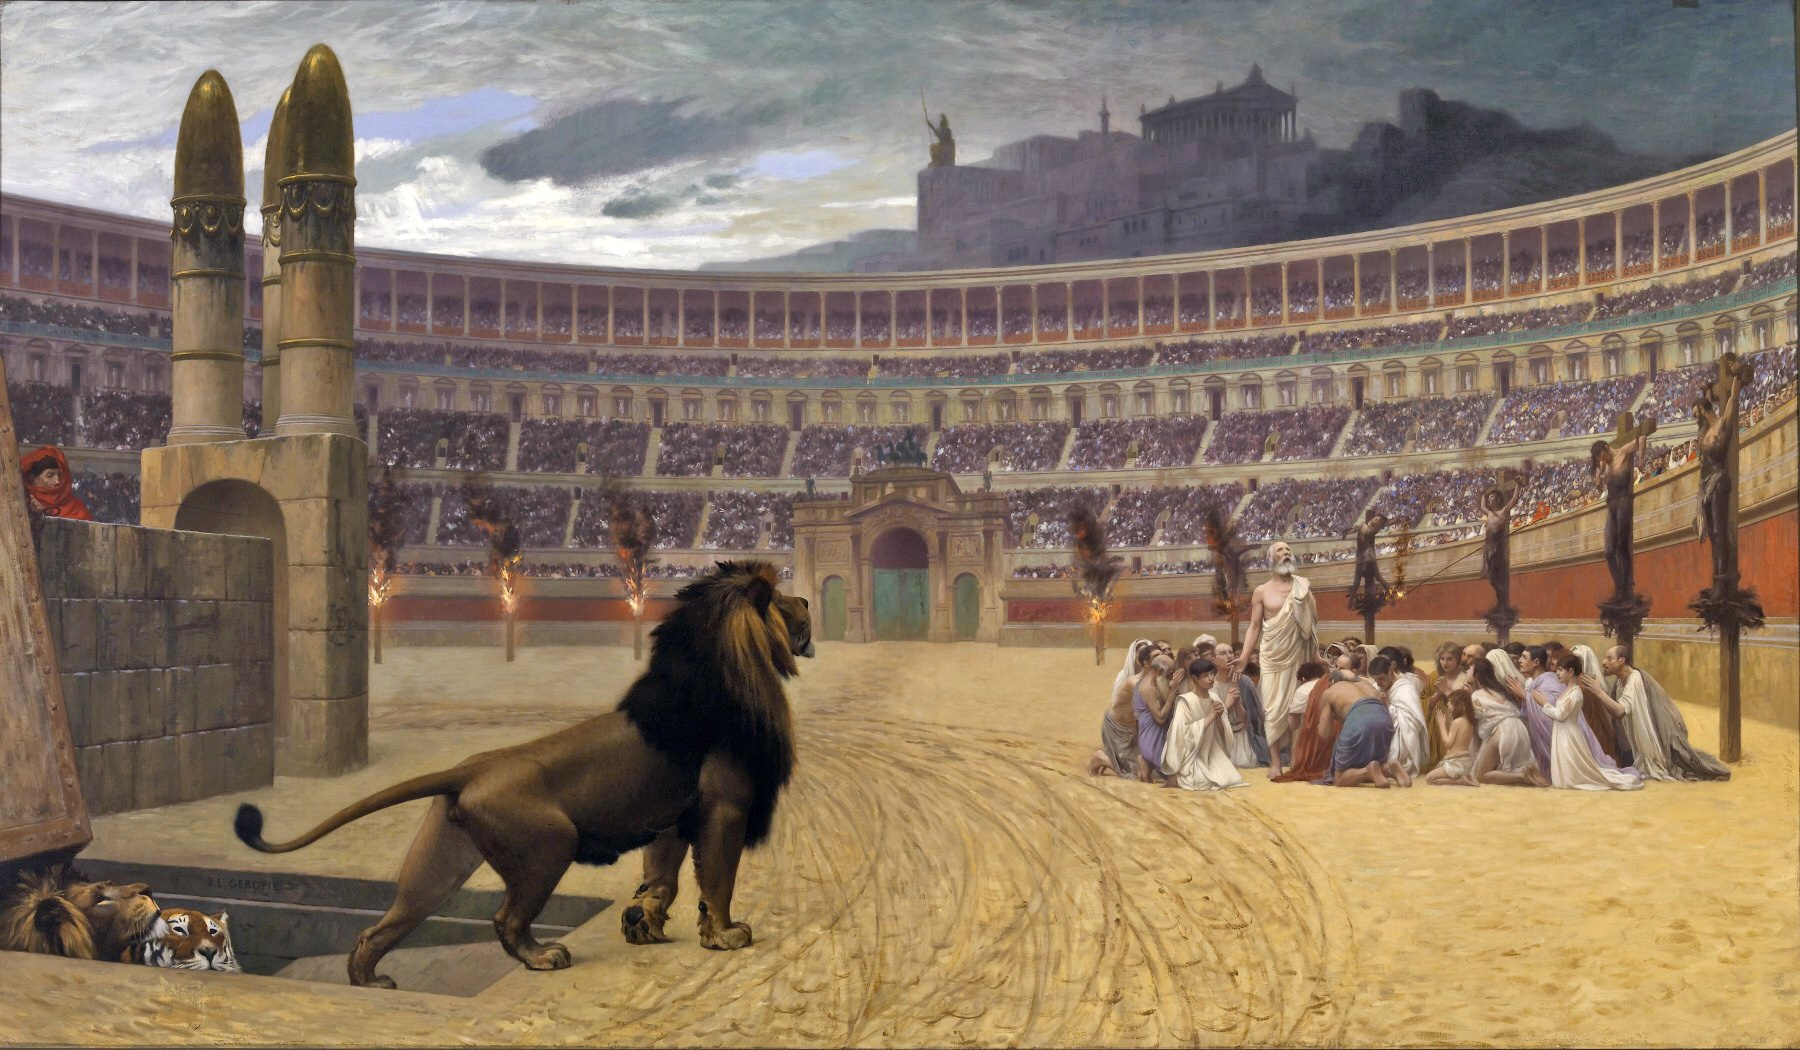 Why Did Nero Throw Christians to the Lions?